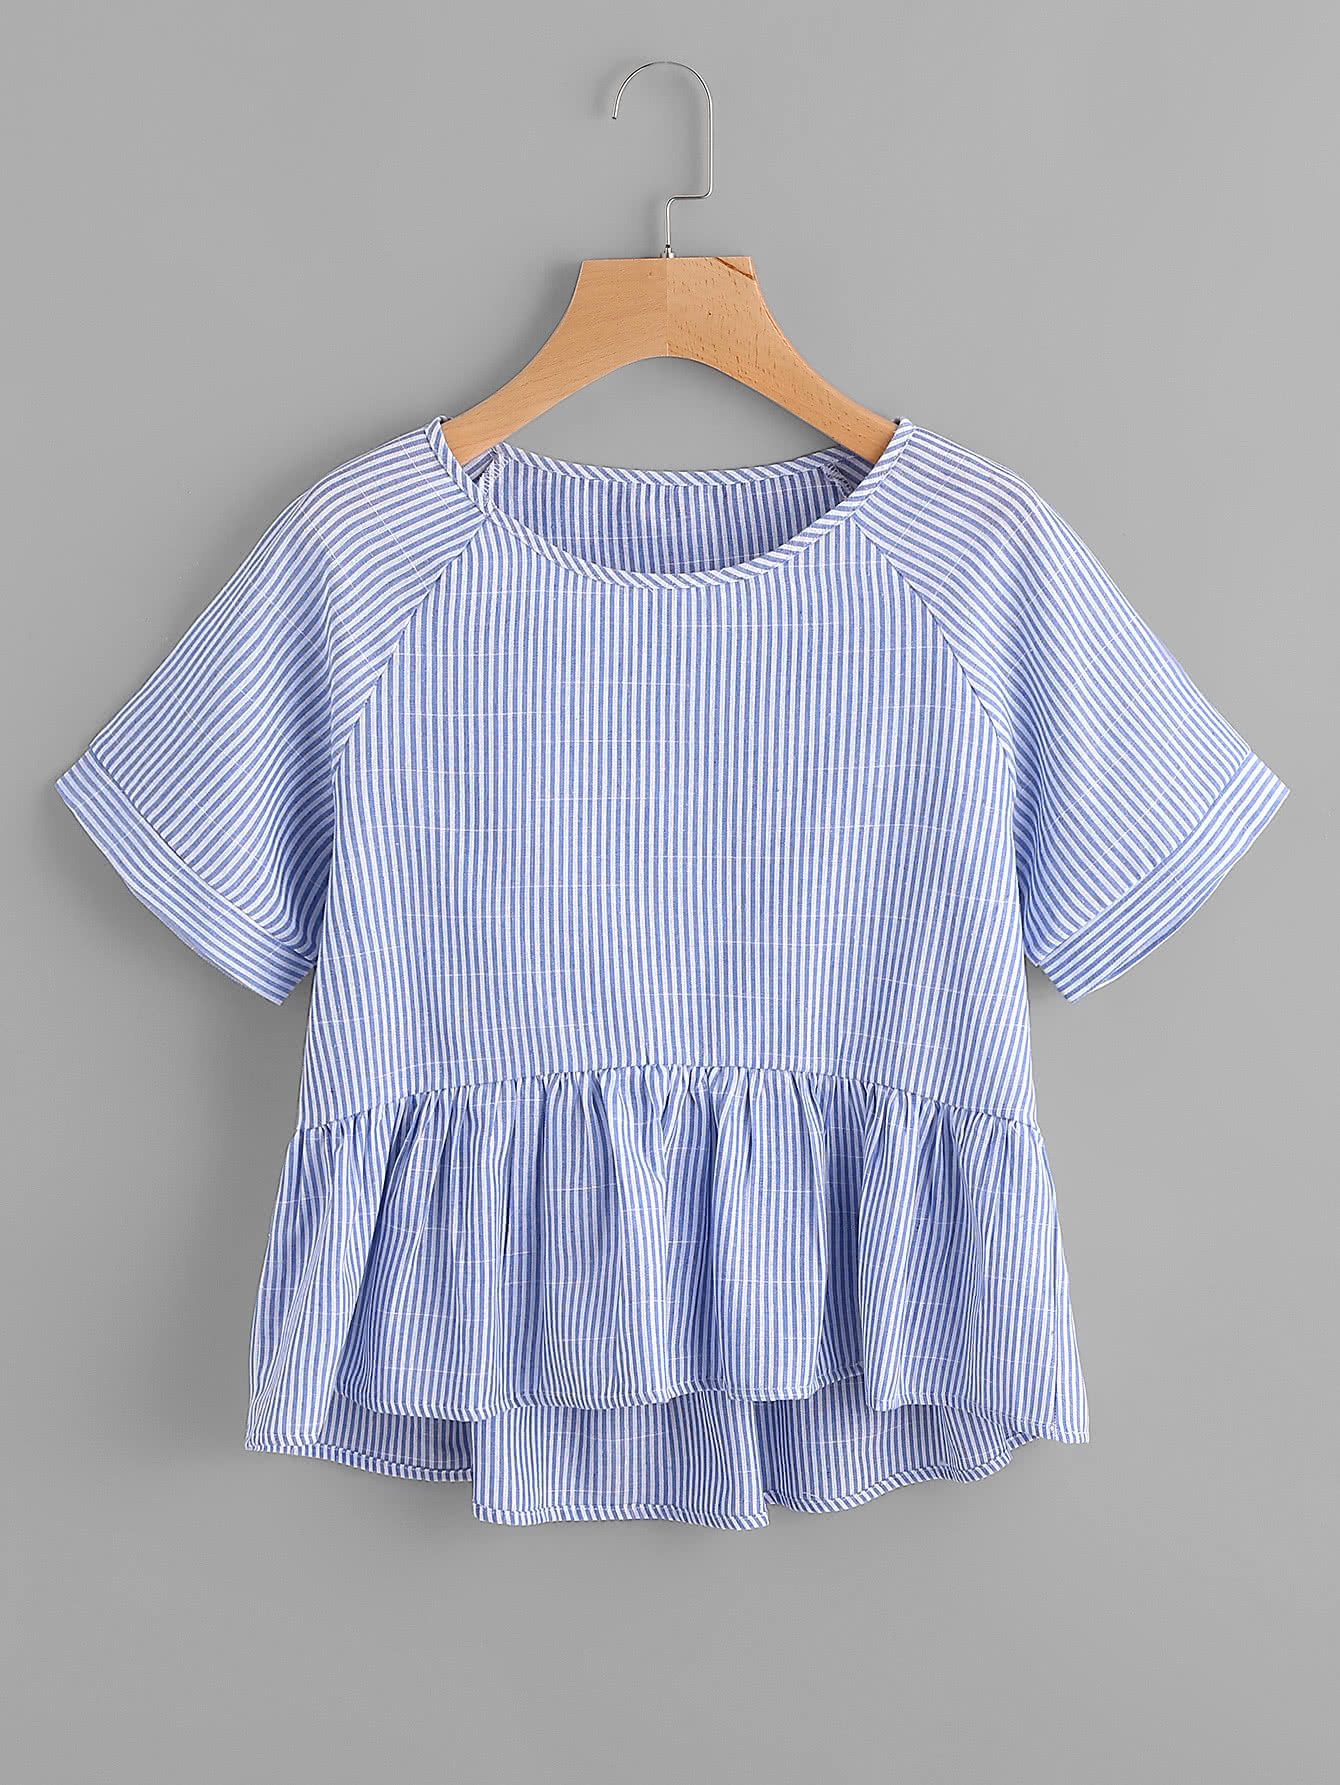 Vertical Striped Raglan Sleeve Smock Blouse blouse170529131